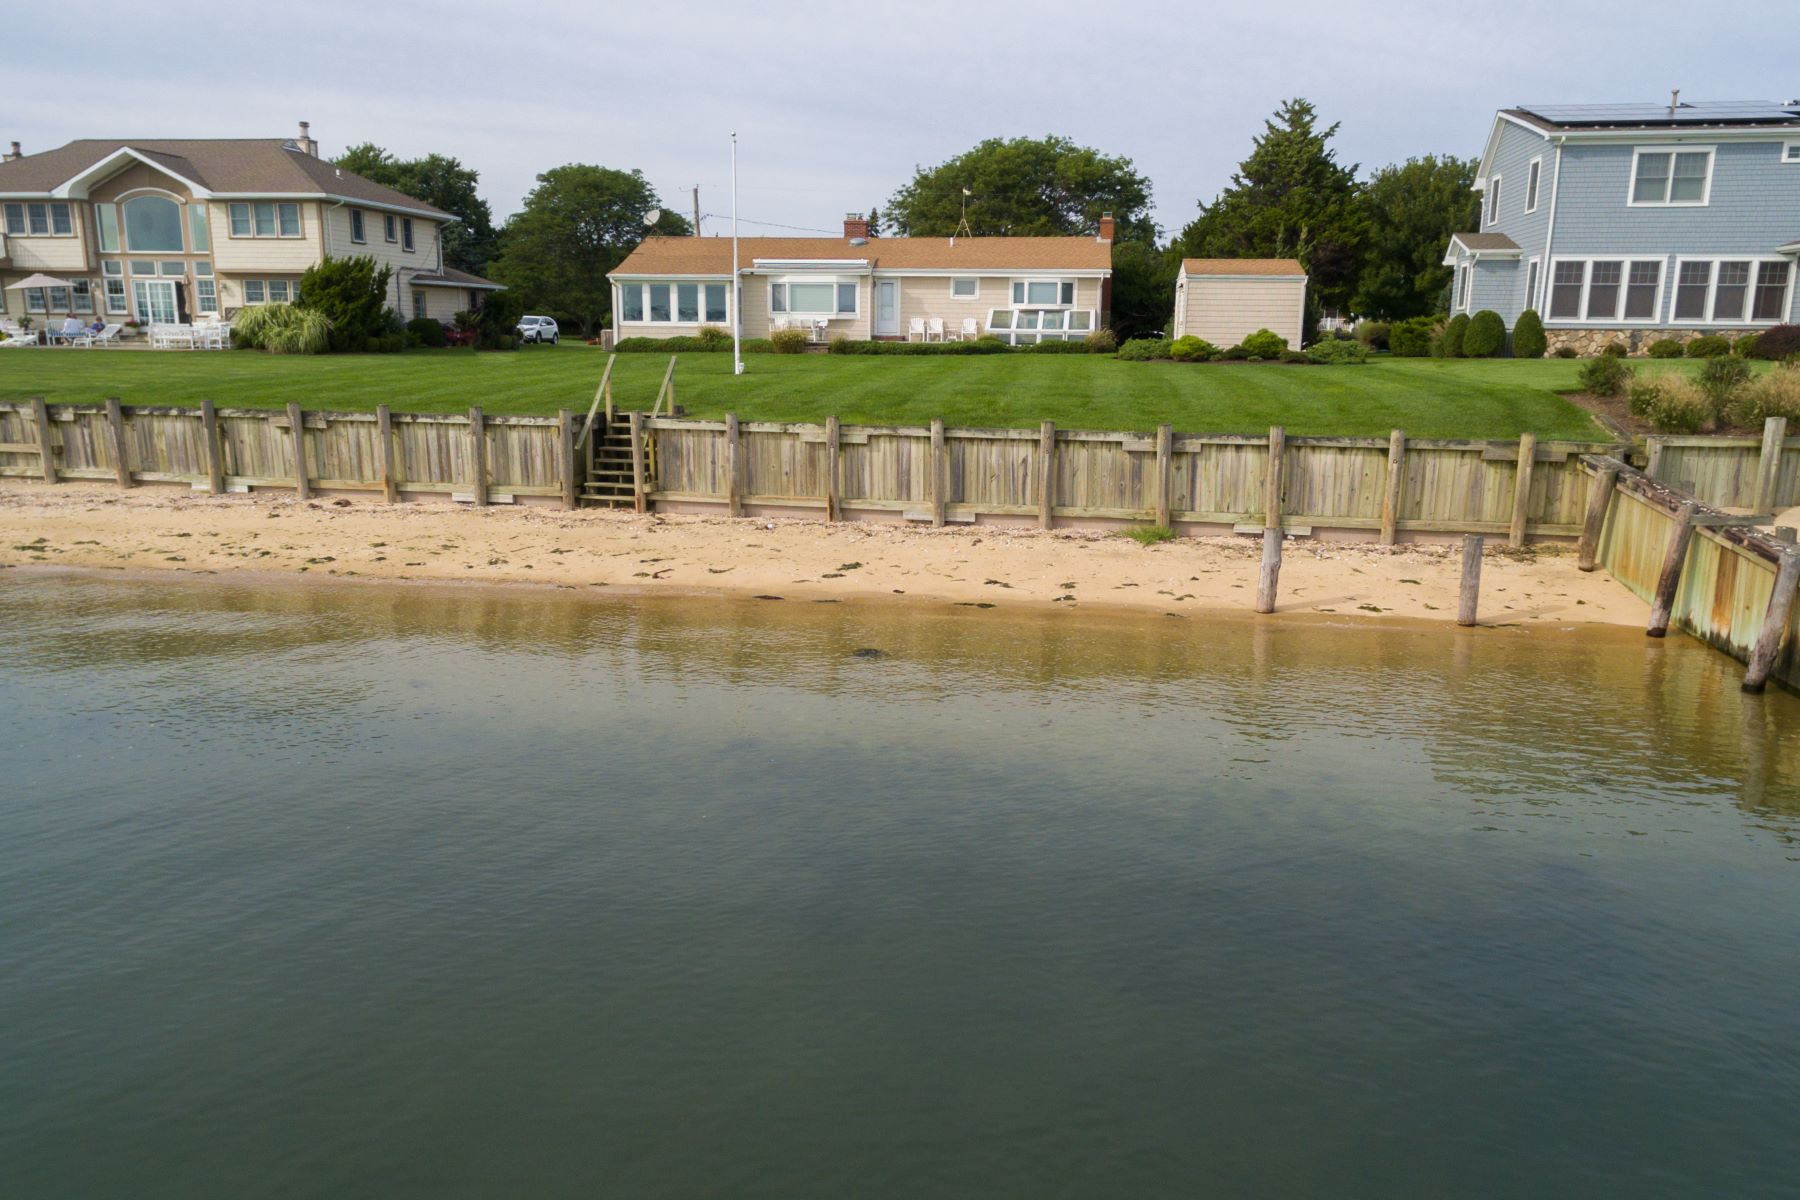 Single Family Homes for Sale at Southold 435 Watersedge Way Southold, New York 11971 United States